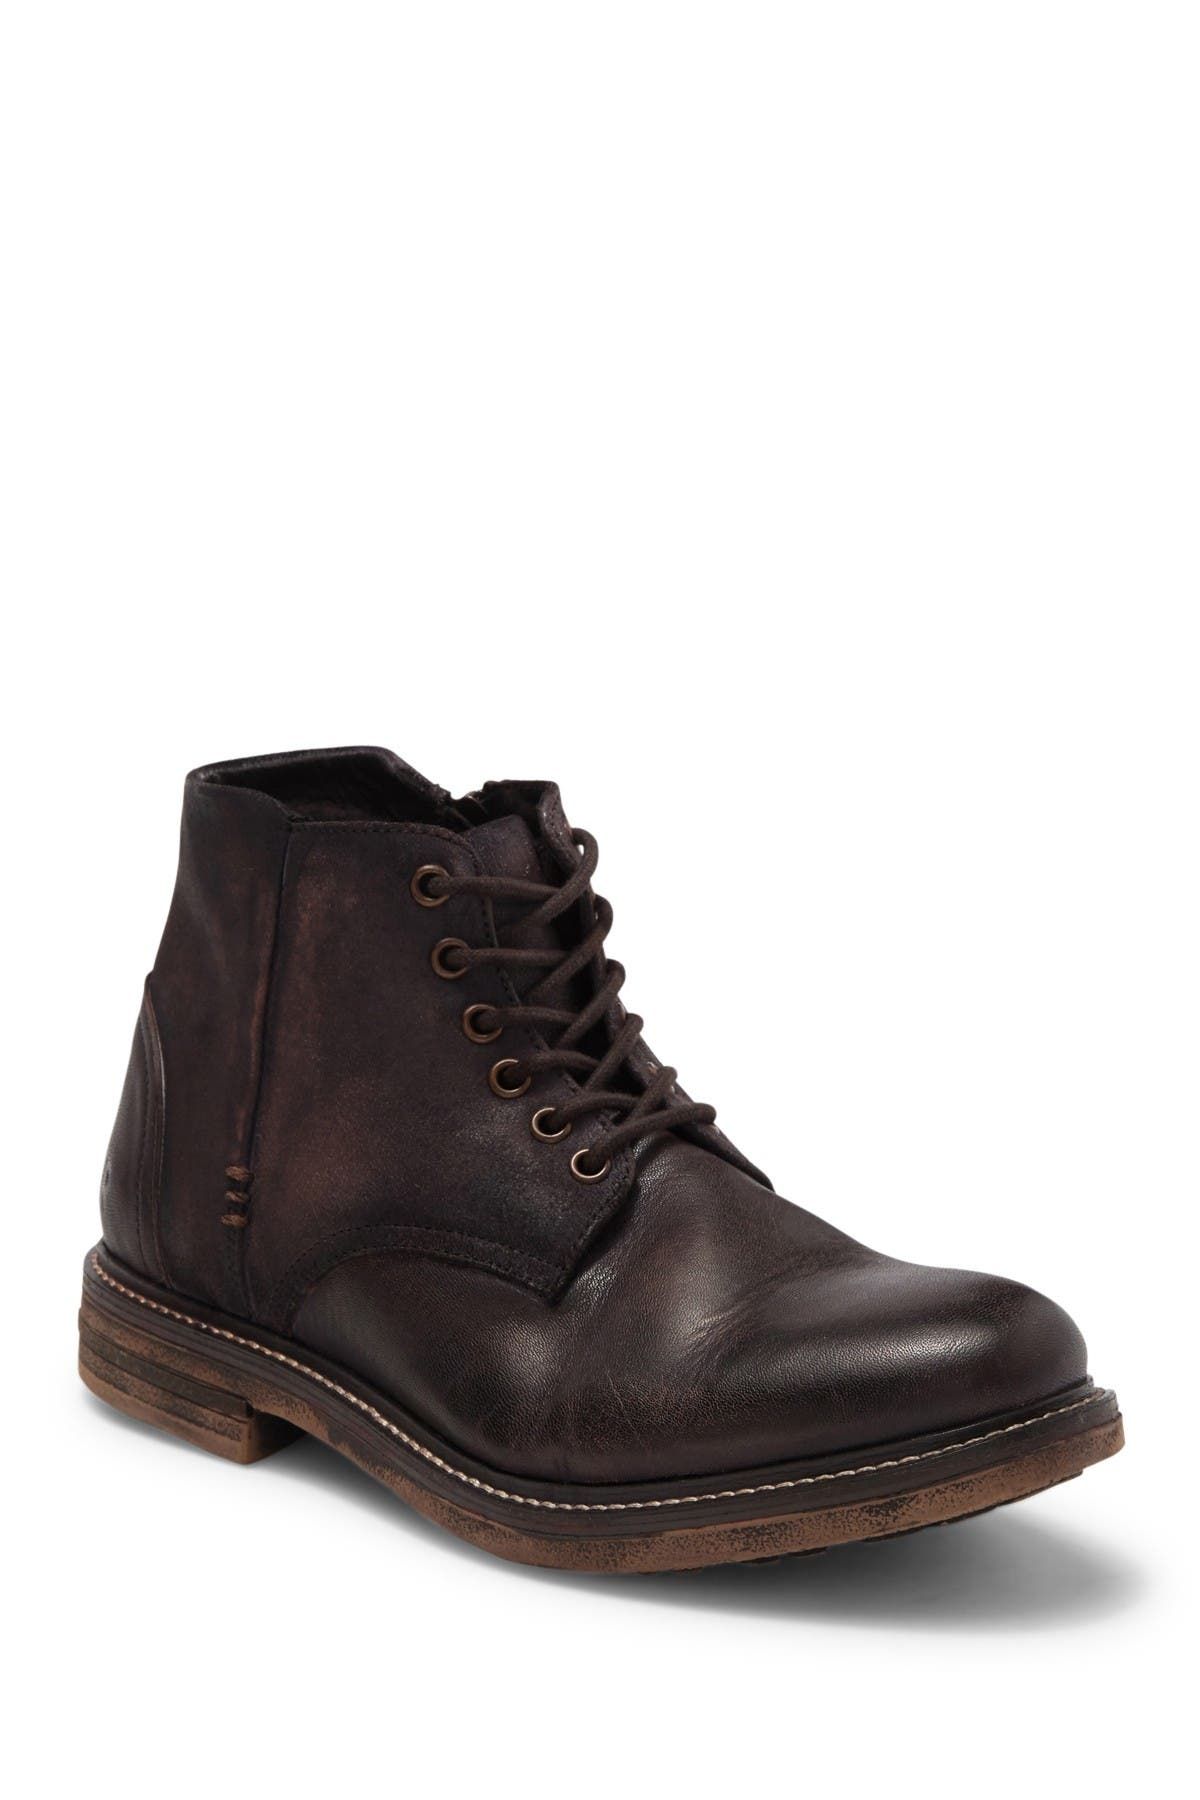 Image of Roan Will Leather Combat Boot